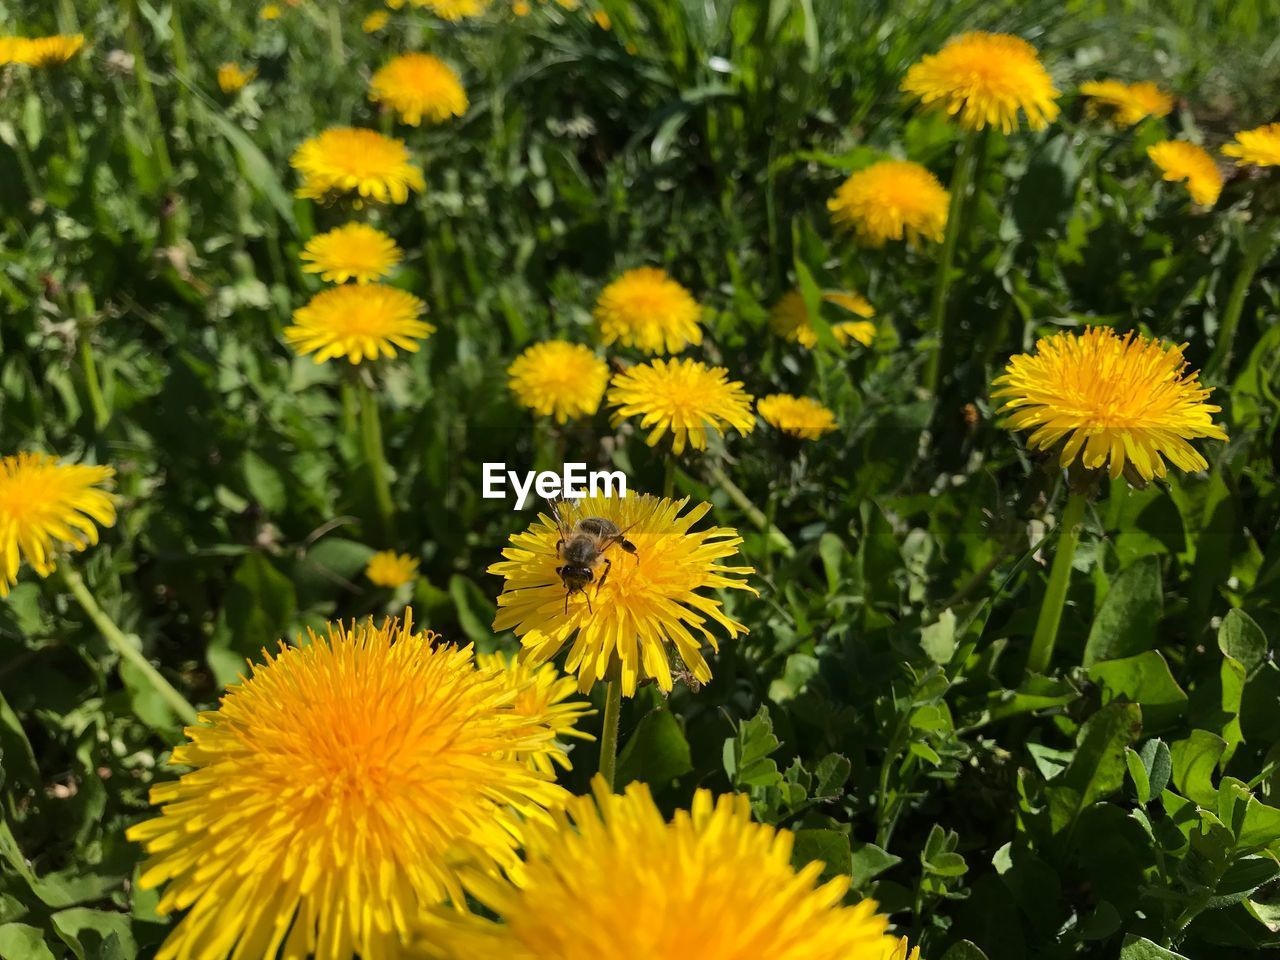 flower, flowering plant, freshness, yellow, plant, fragility, beauty in nature, vulnerability, growth, flower head, petal, inflorescence, close-up, nature, field, no people, day, botany, land, outdoors, pollen